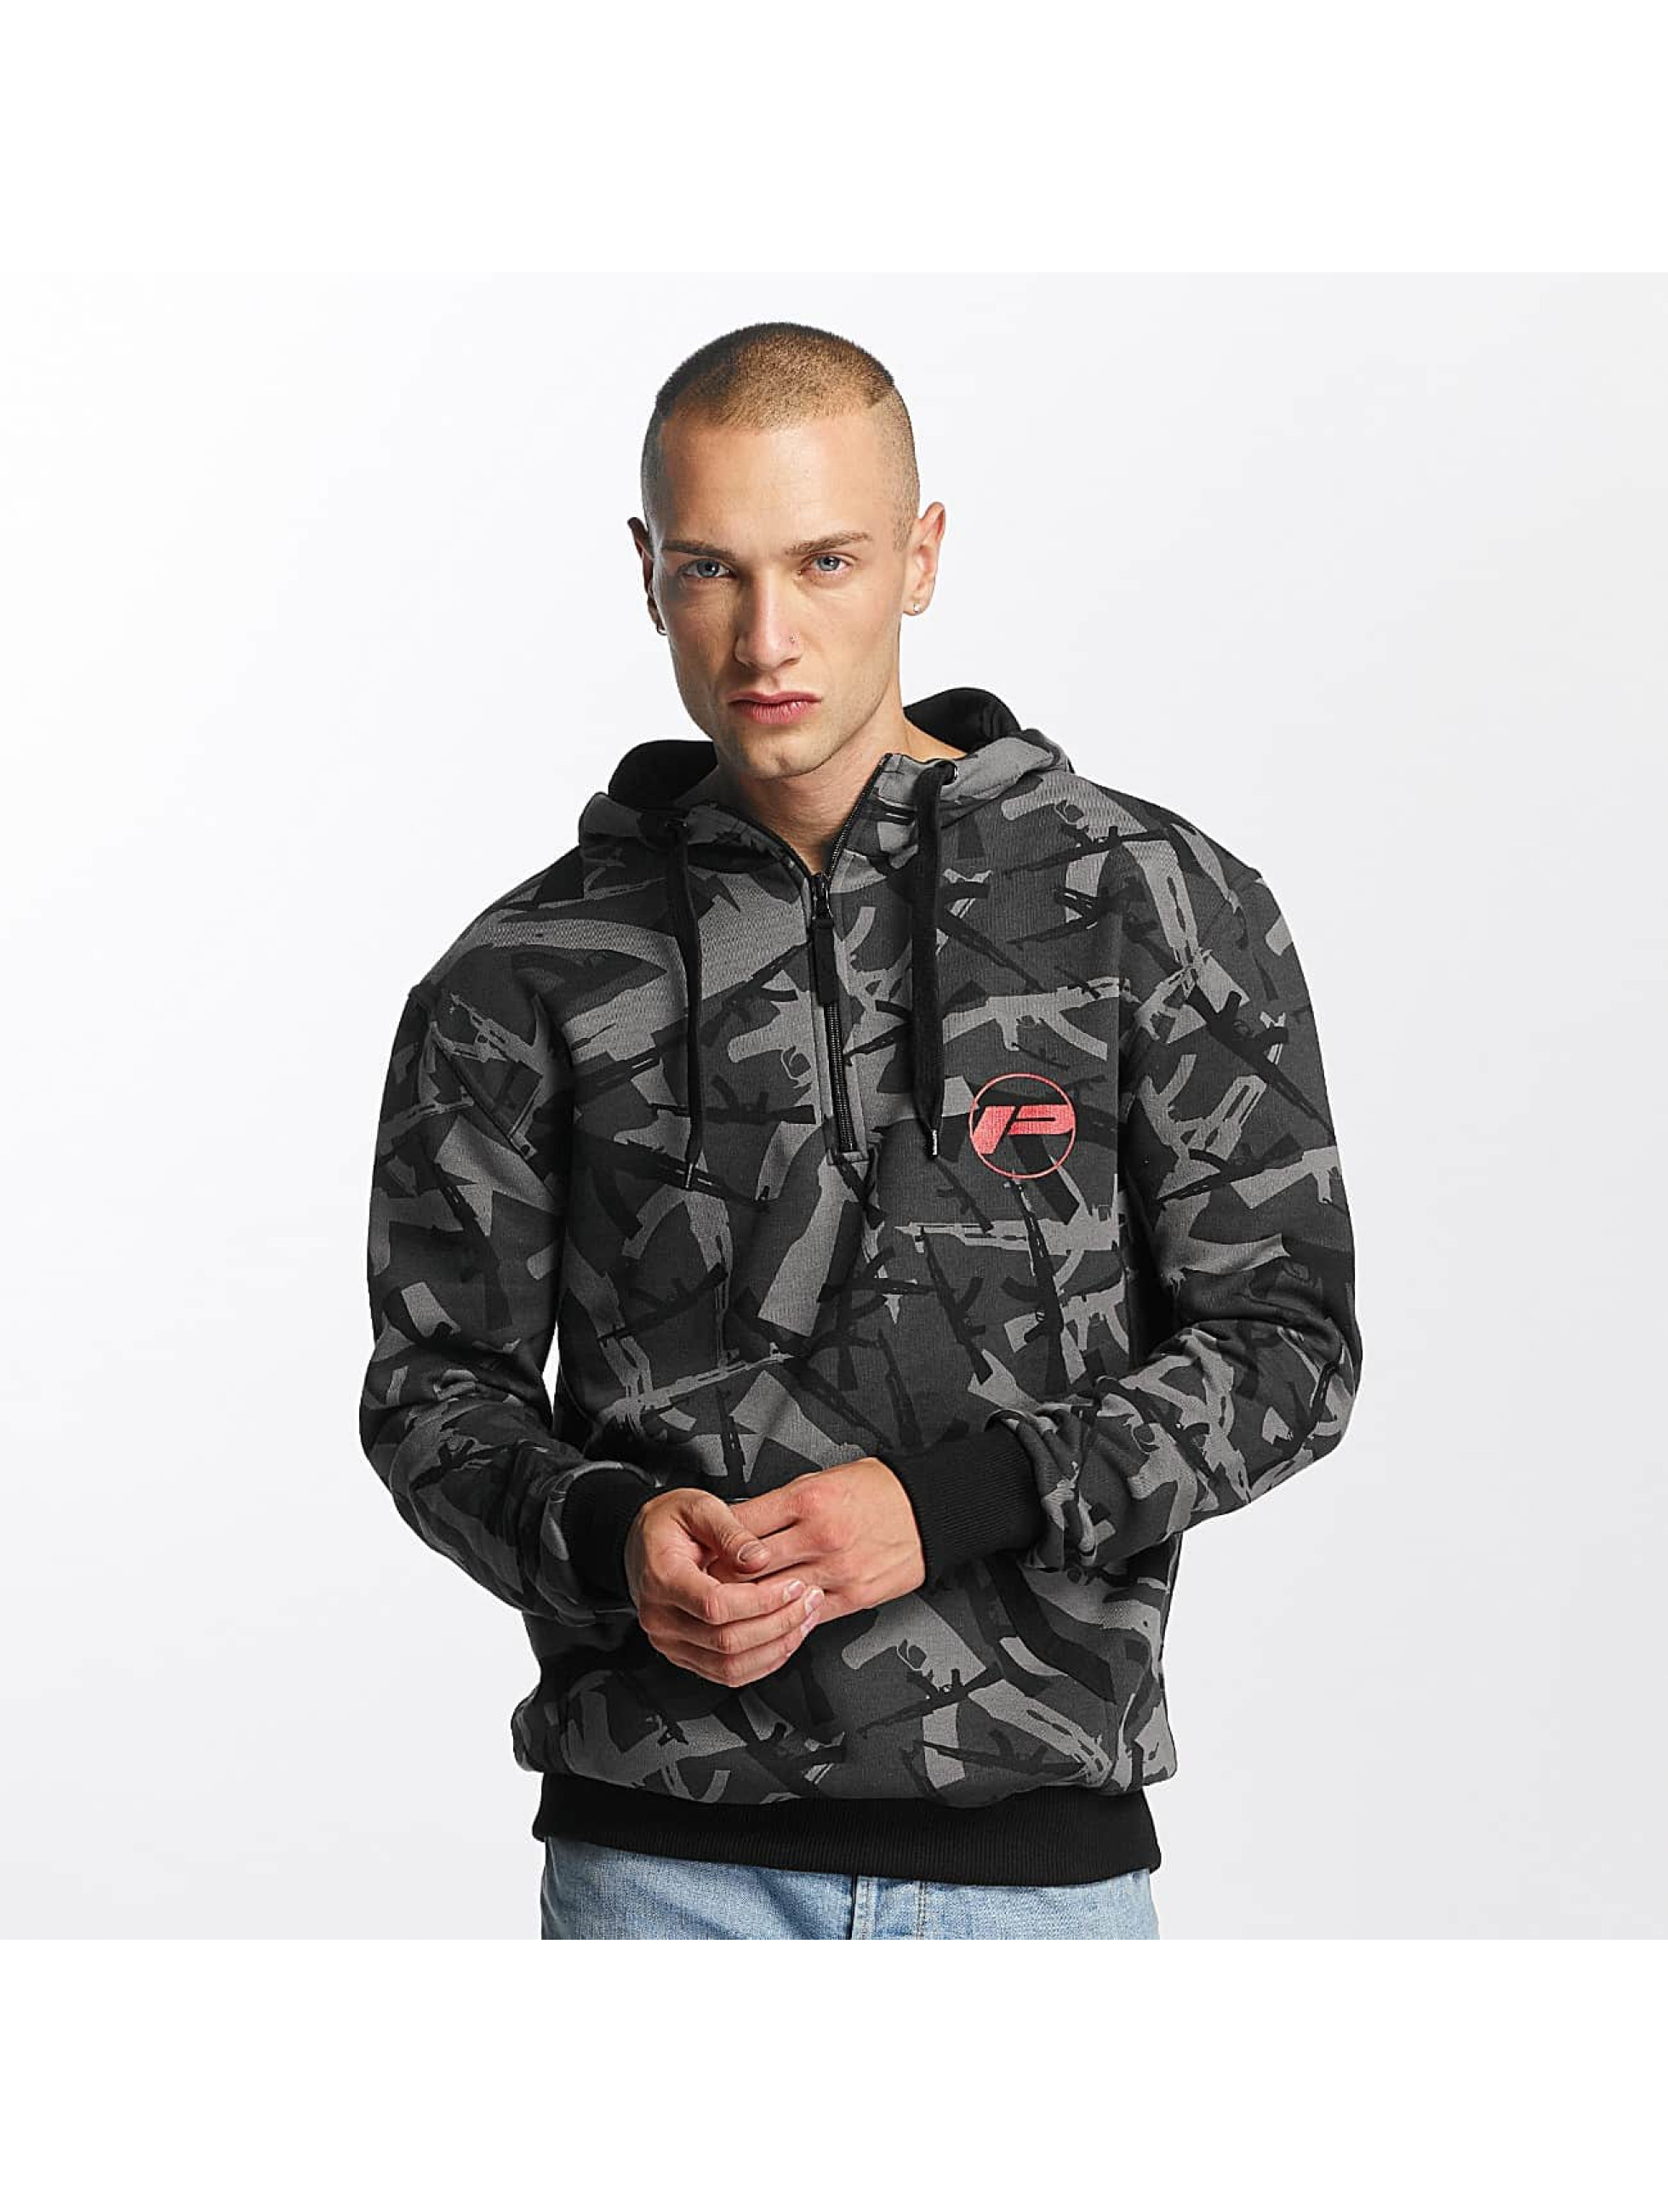 Pusher Apparel Hoodie AK Camo camouflage